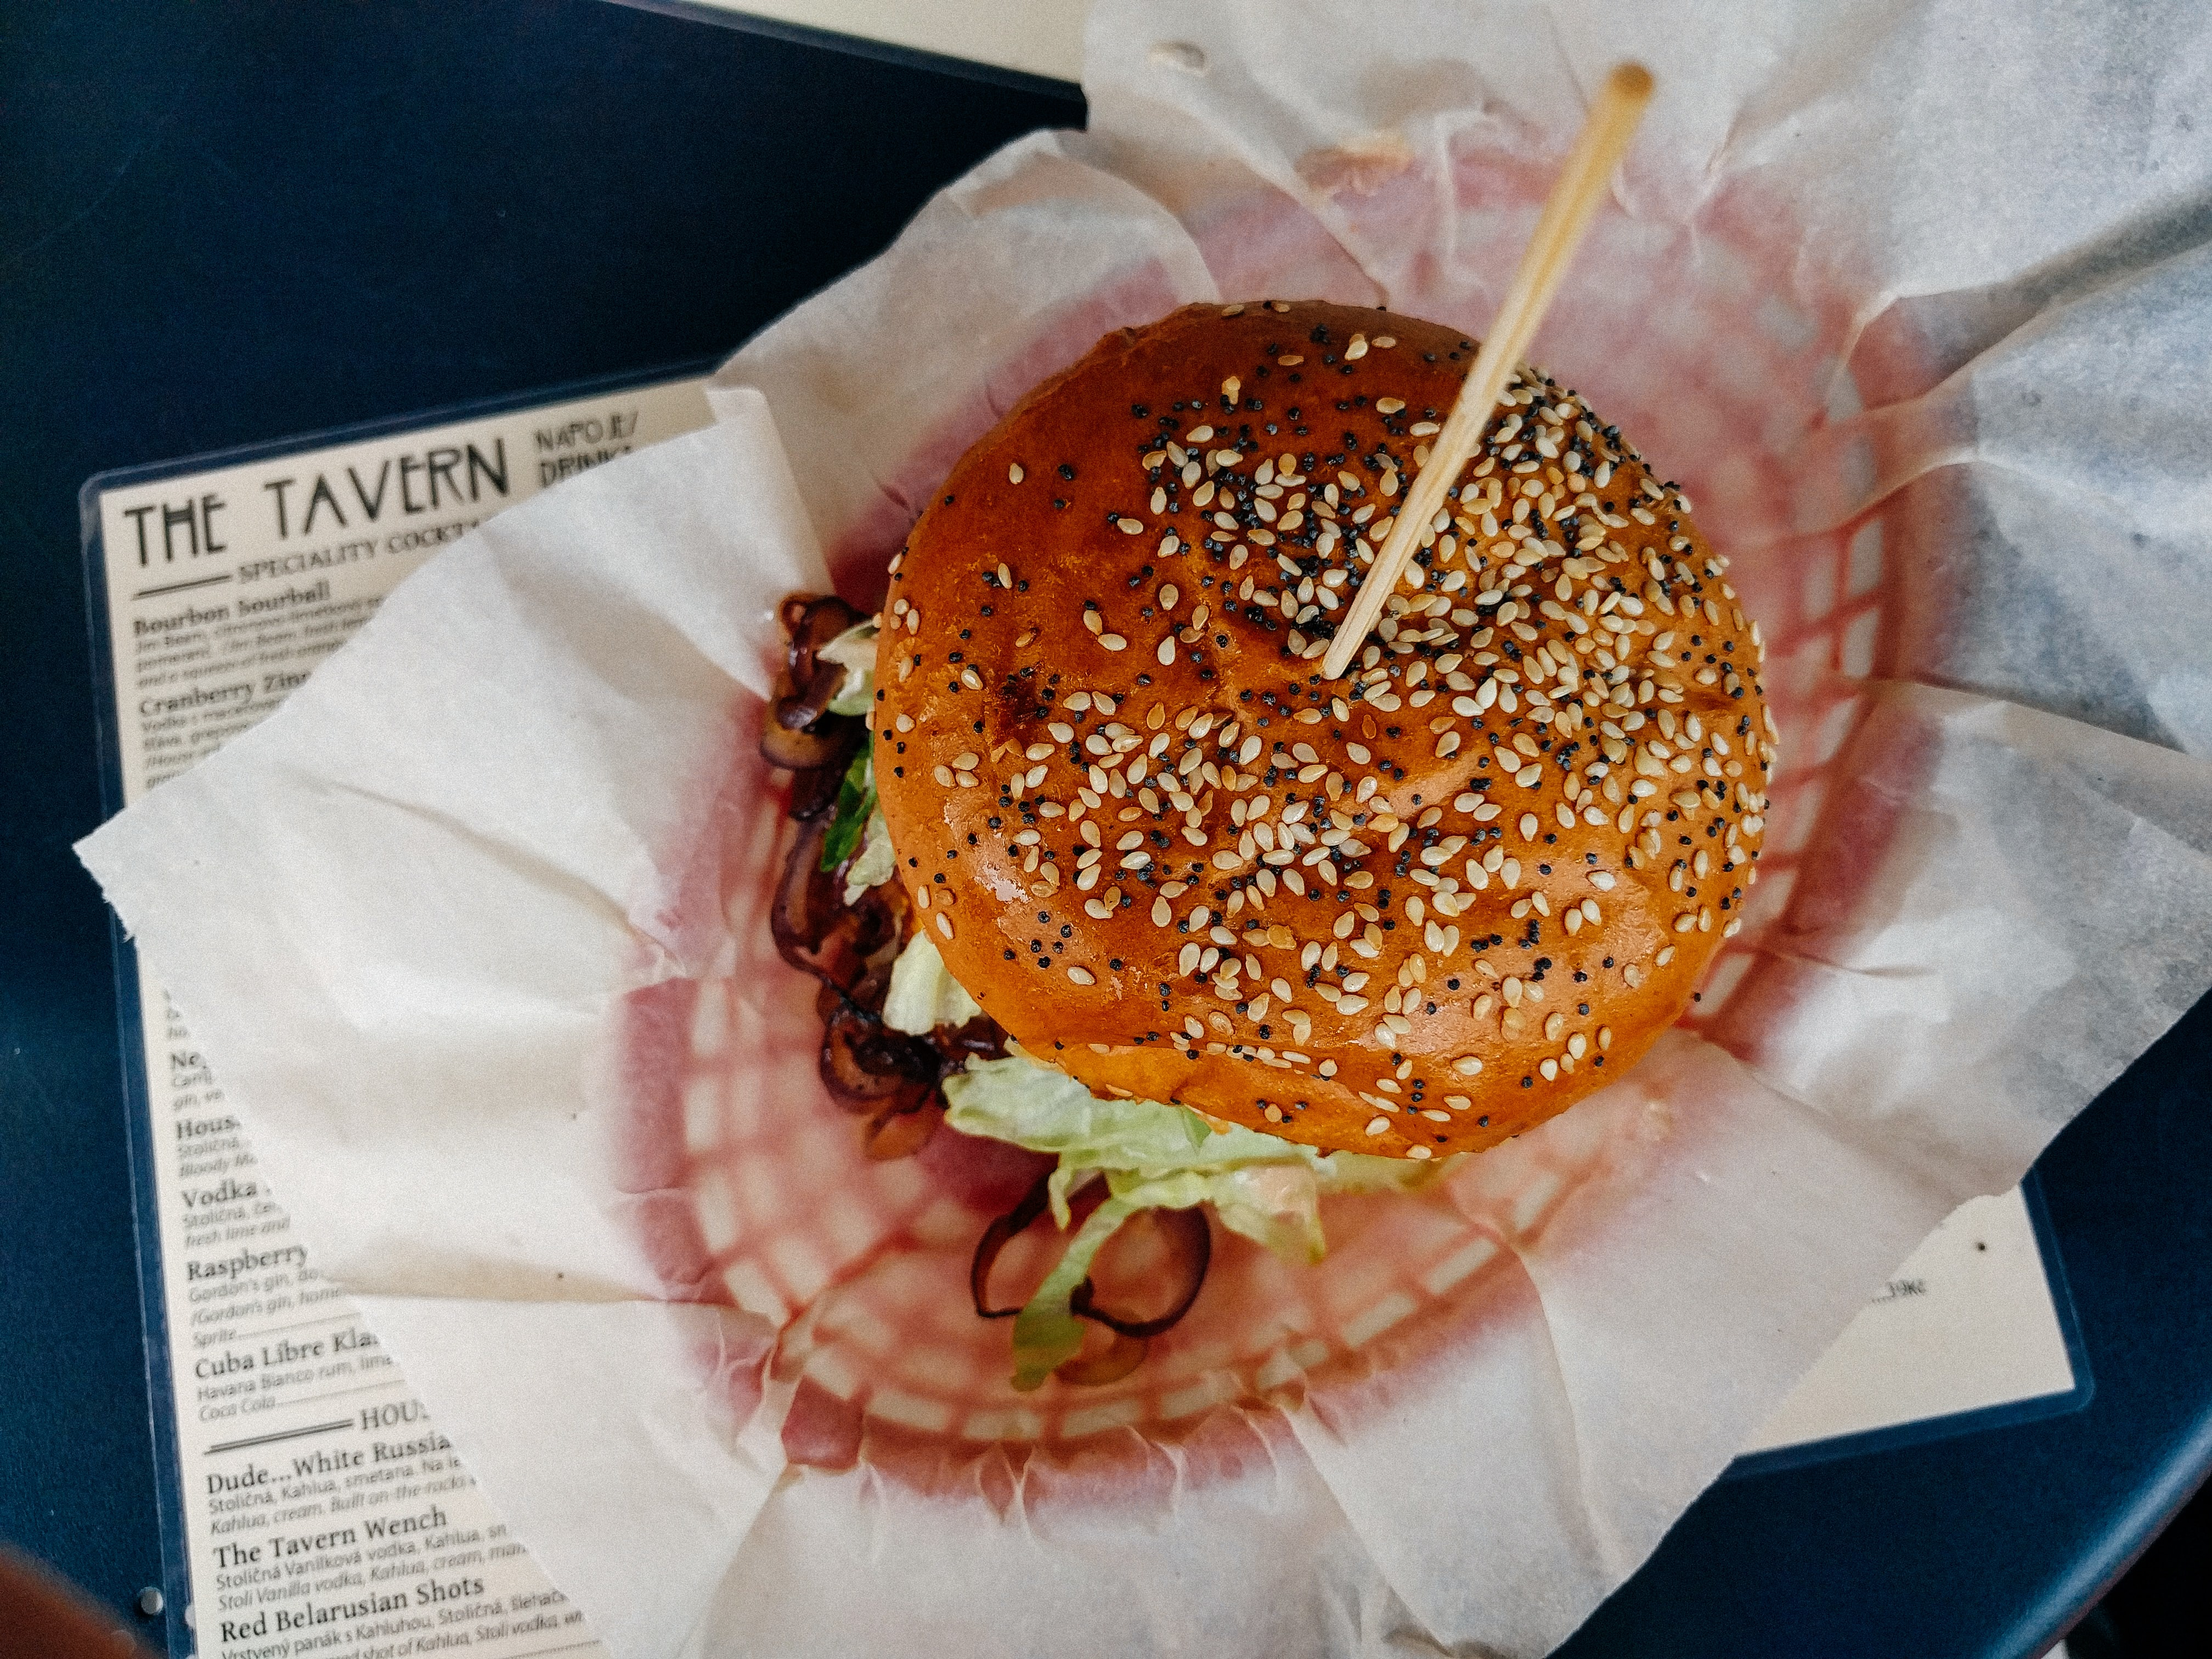 Burger with a sesame seed bun at a bar and grill restaurant